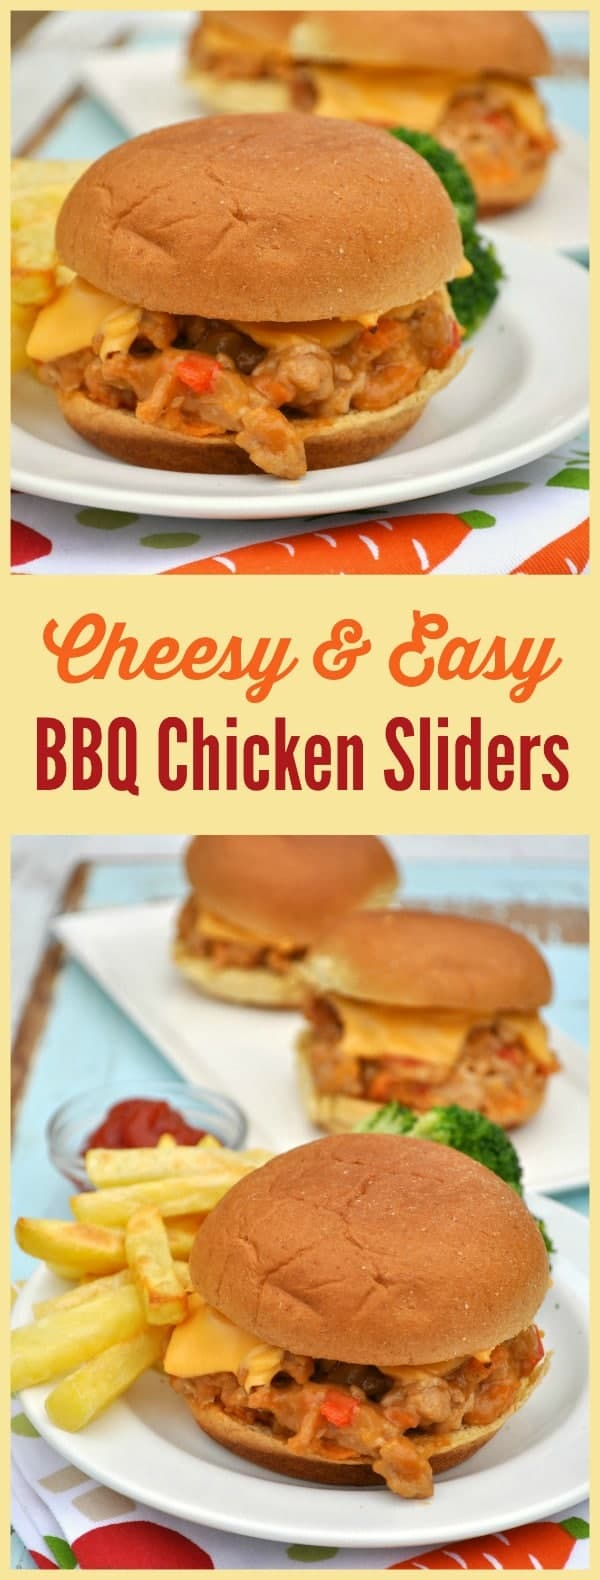 Cheesy & Easy Barbecue Chicken Sliders 1